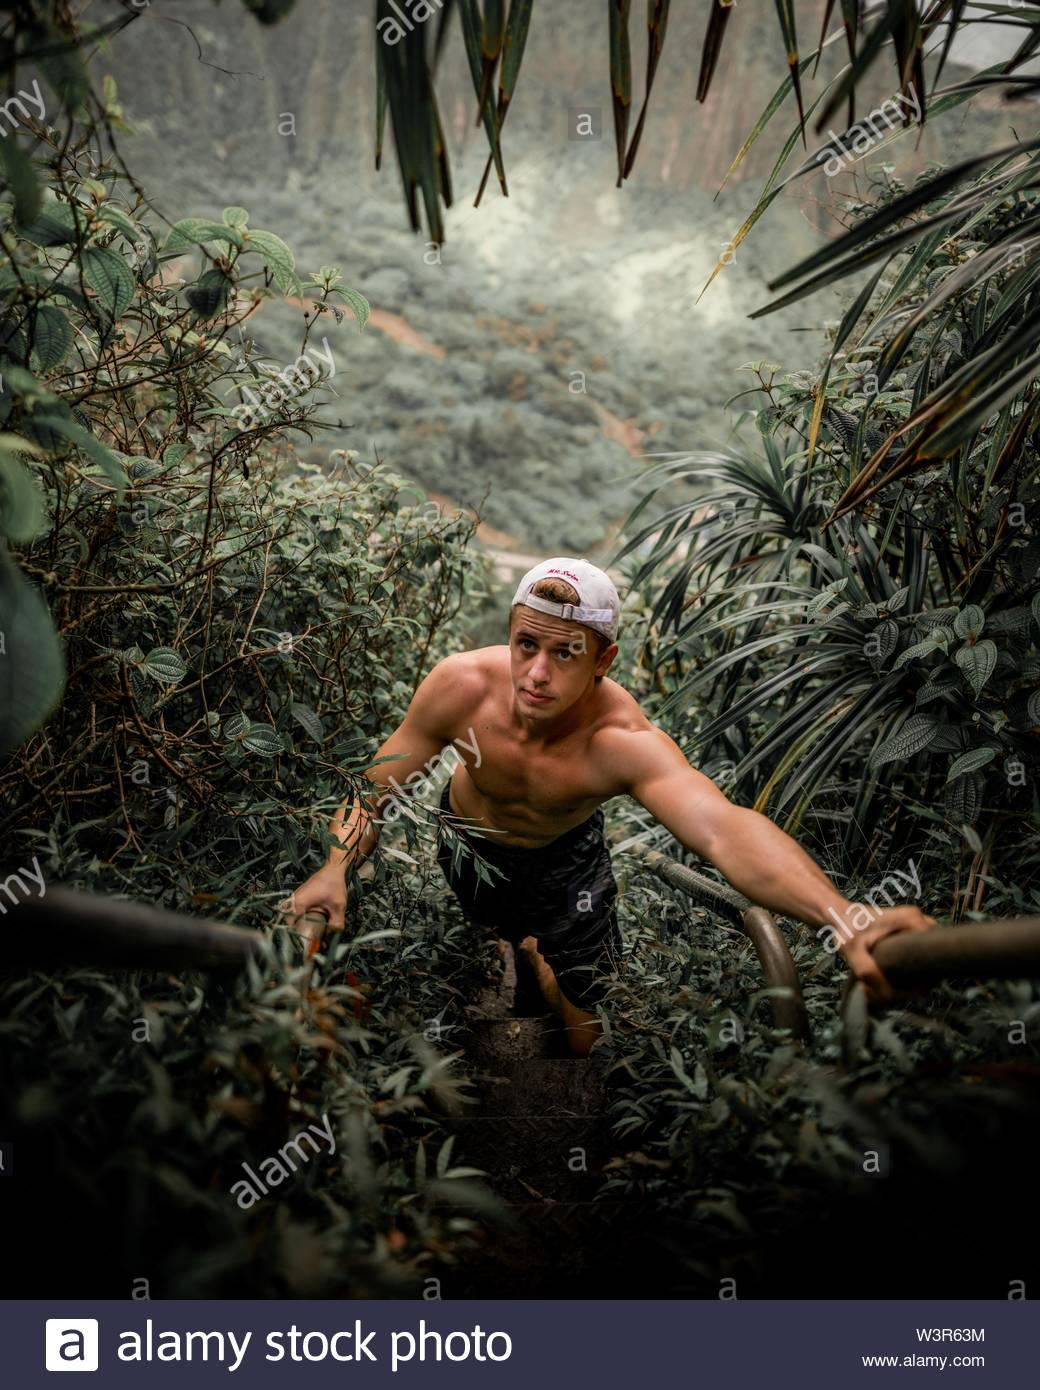 A fit male climbing a steep hill in a tropical jungle surrounded by greenery - Stock Image